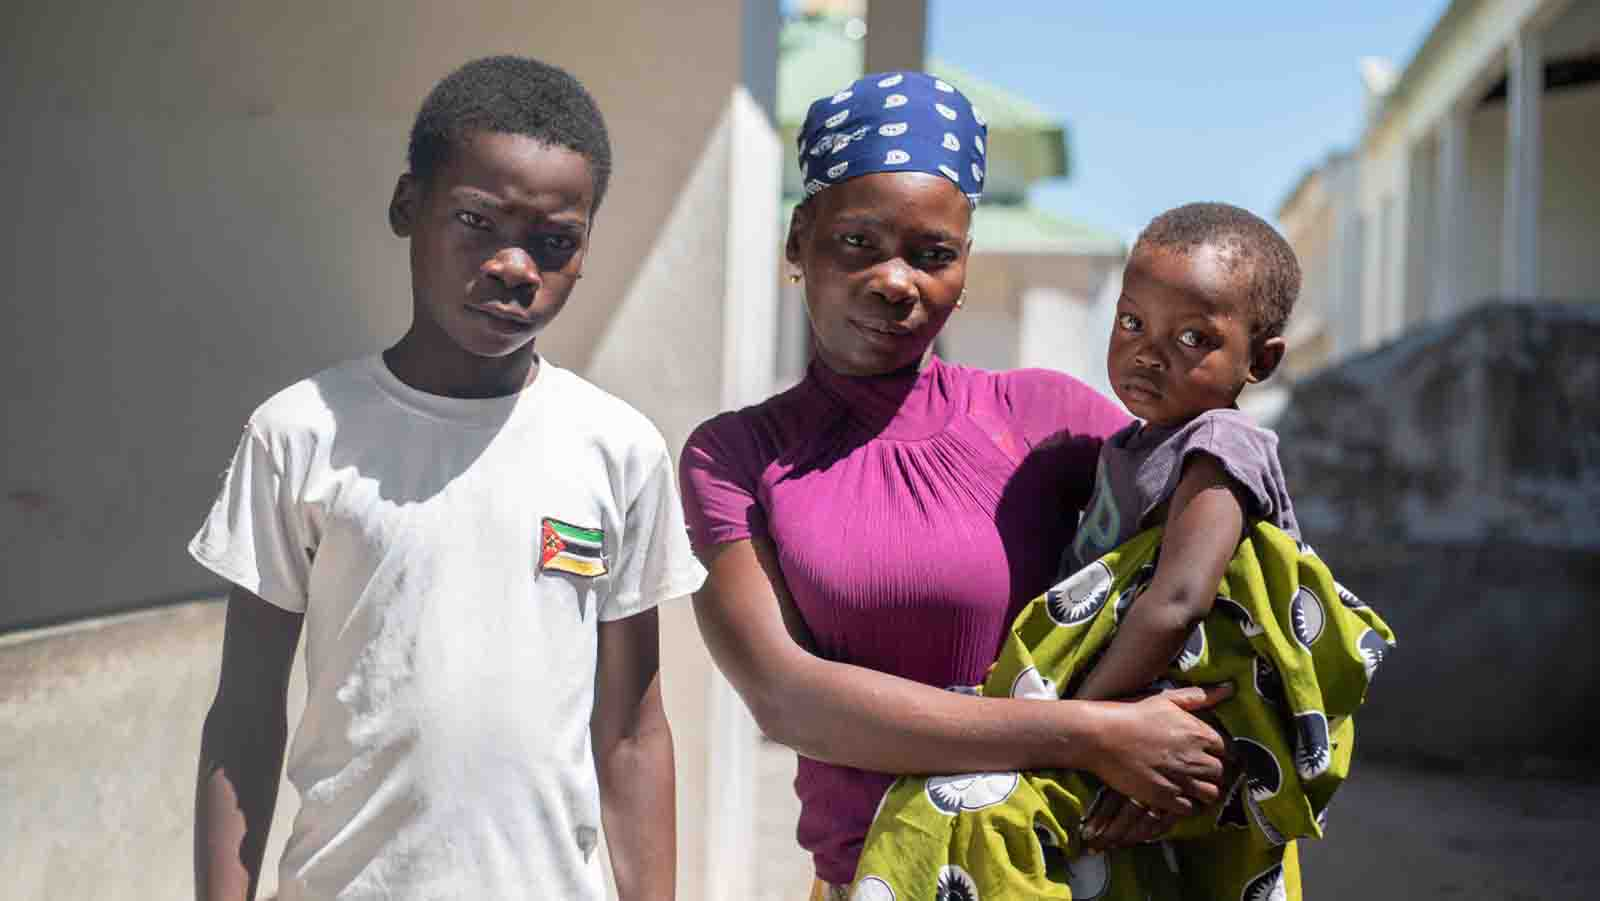 Cyclone Idai tears through Mozambique: Adelino's Story